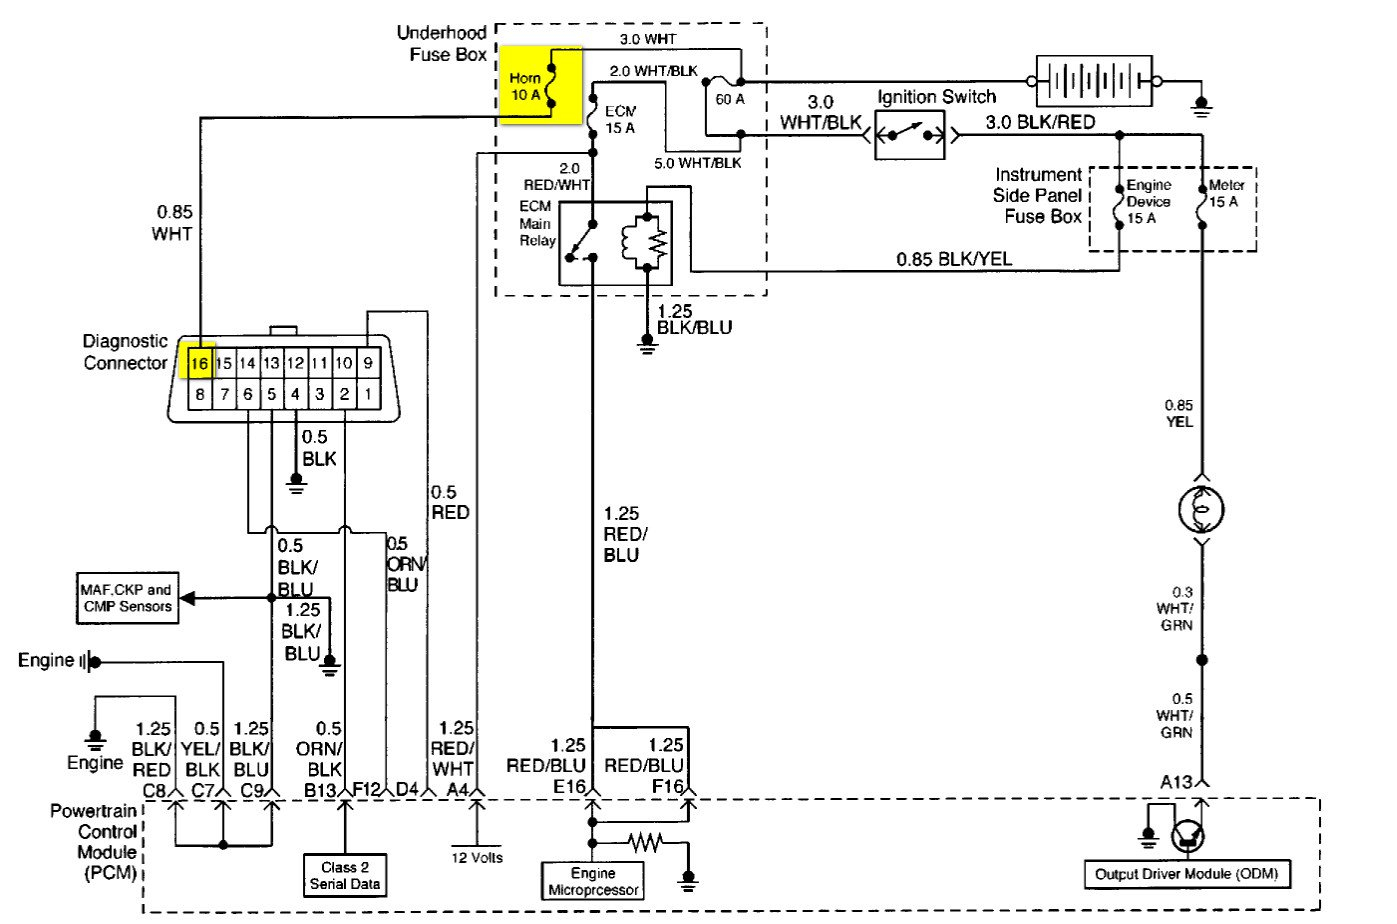 obd2 to usb cable wiring diagram usb to usb cable wiring diagram